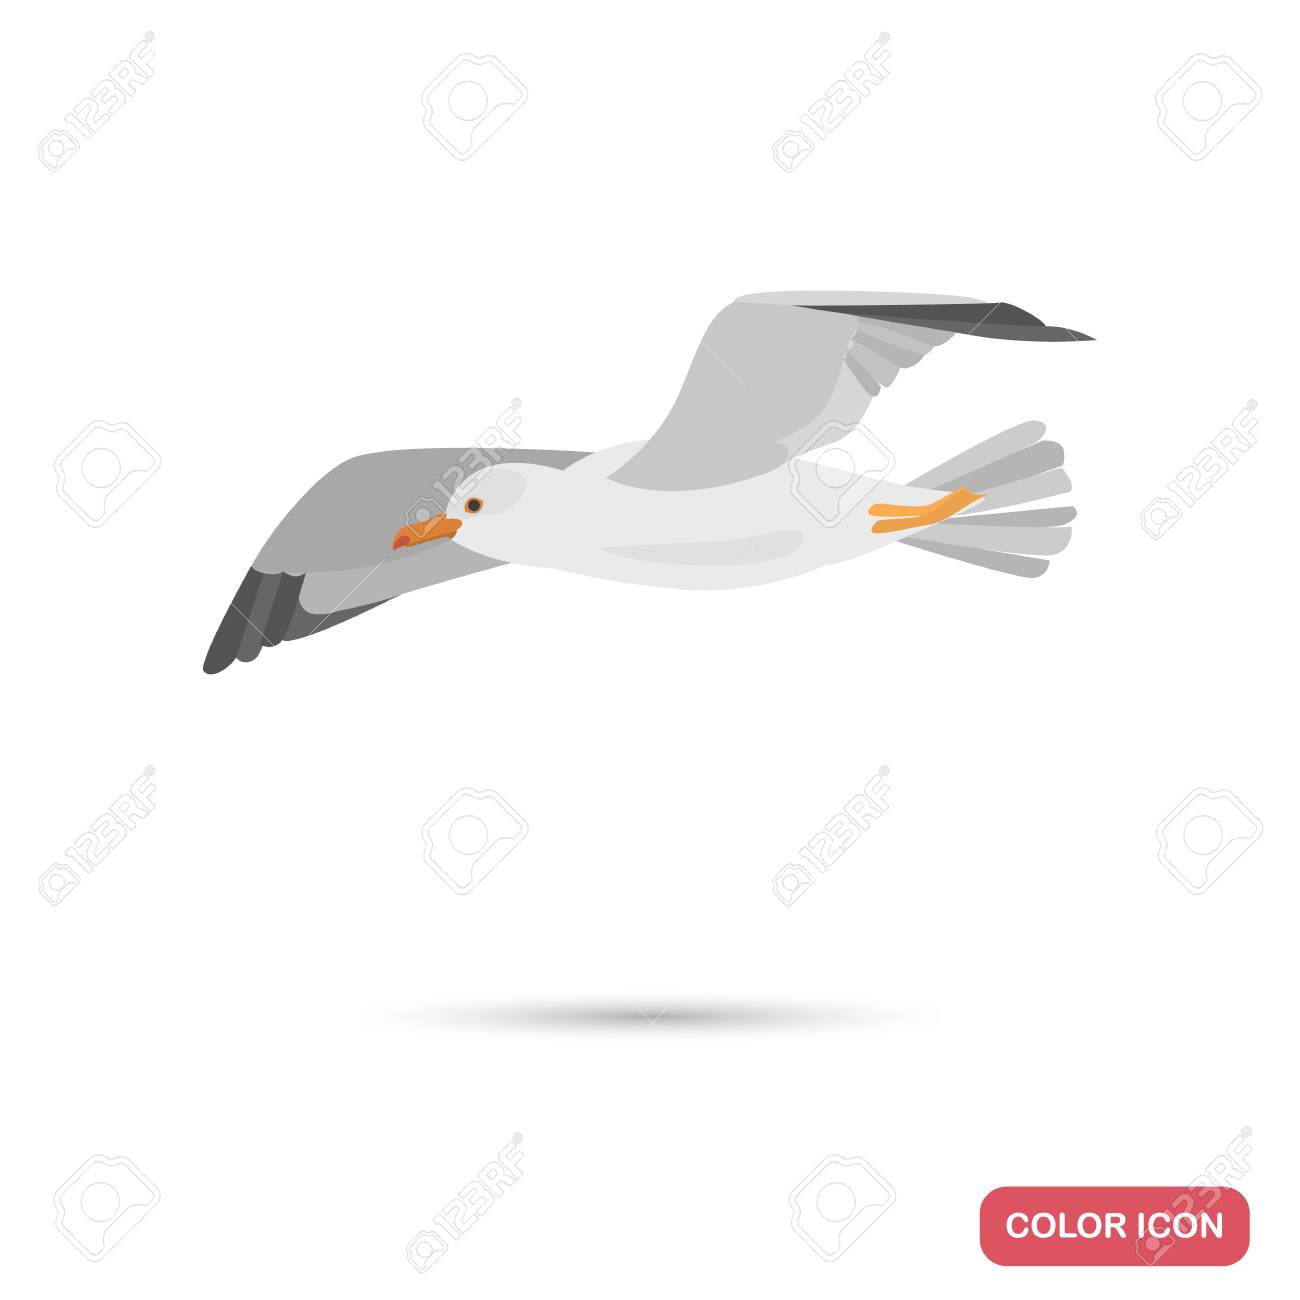 Flying seagull color flat icon - 114863519